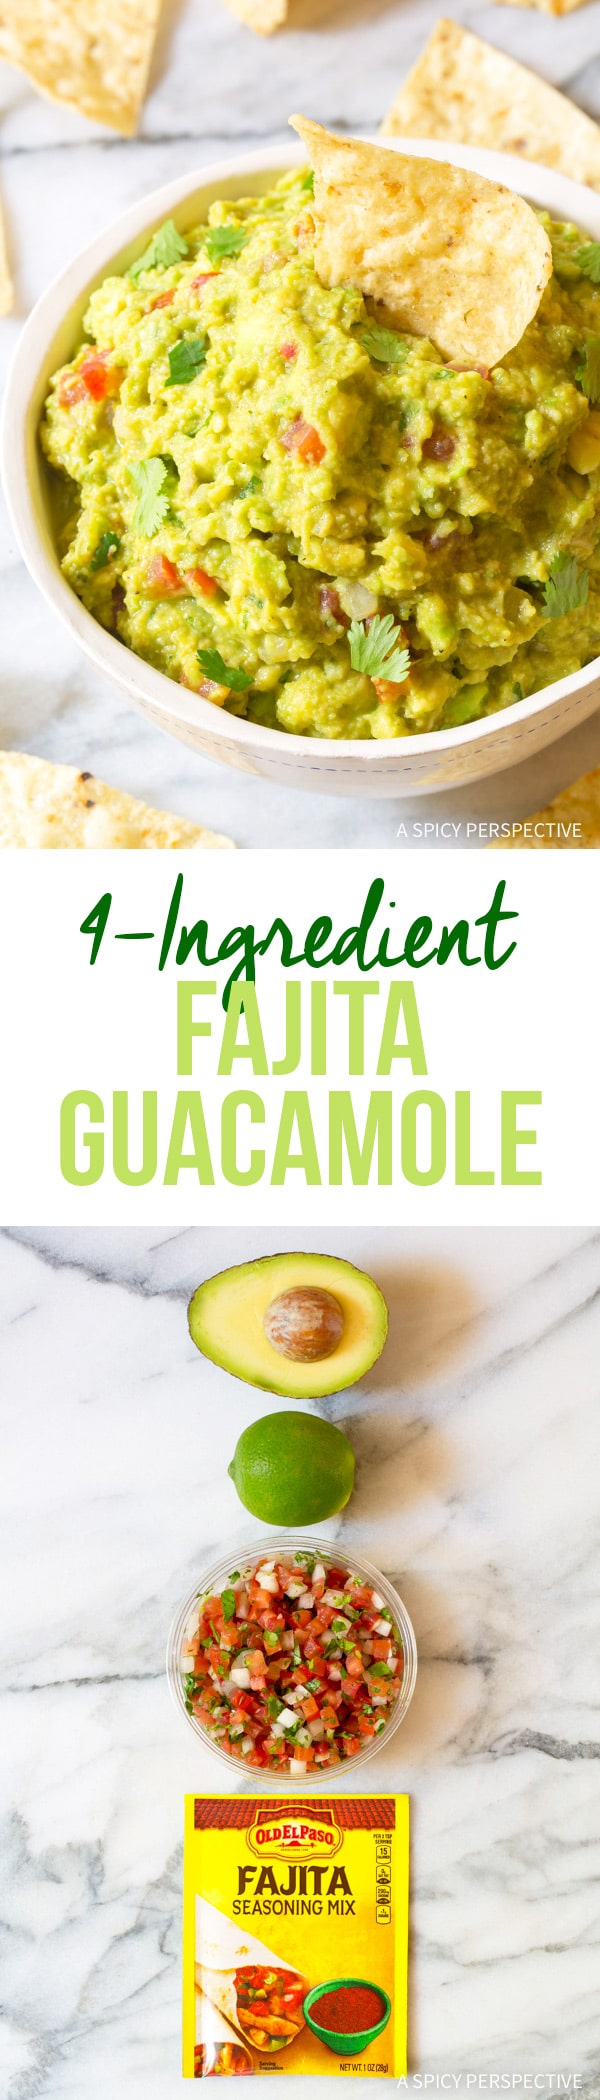 Magic 4-Ingredient Fajita Guacamole Recipe #healthy